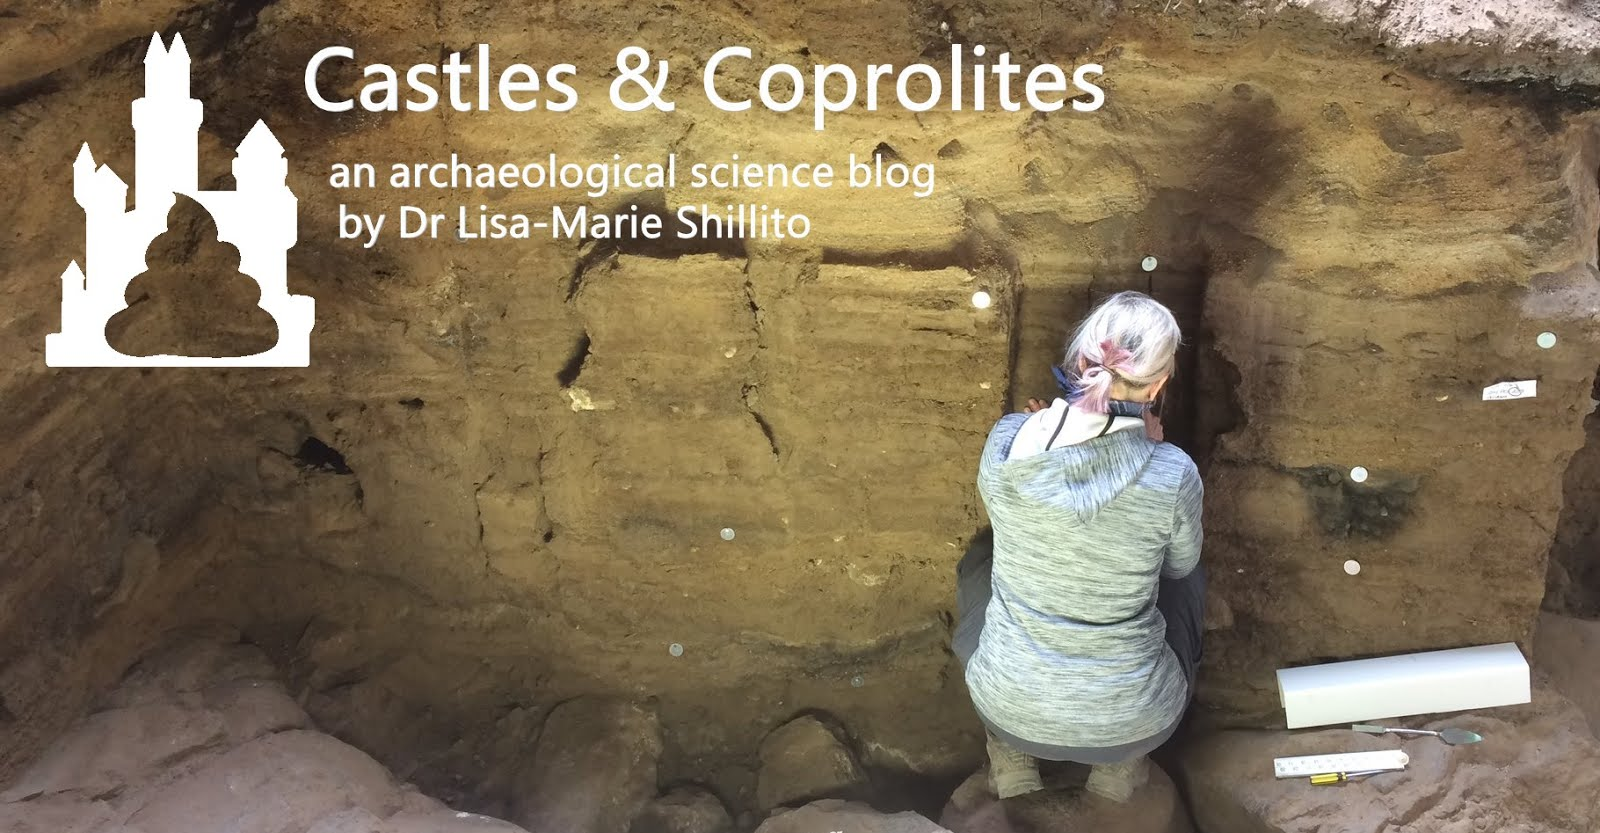 Castles and Coprolites